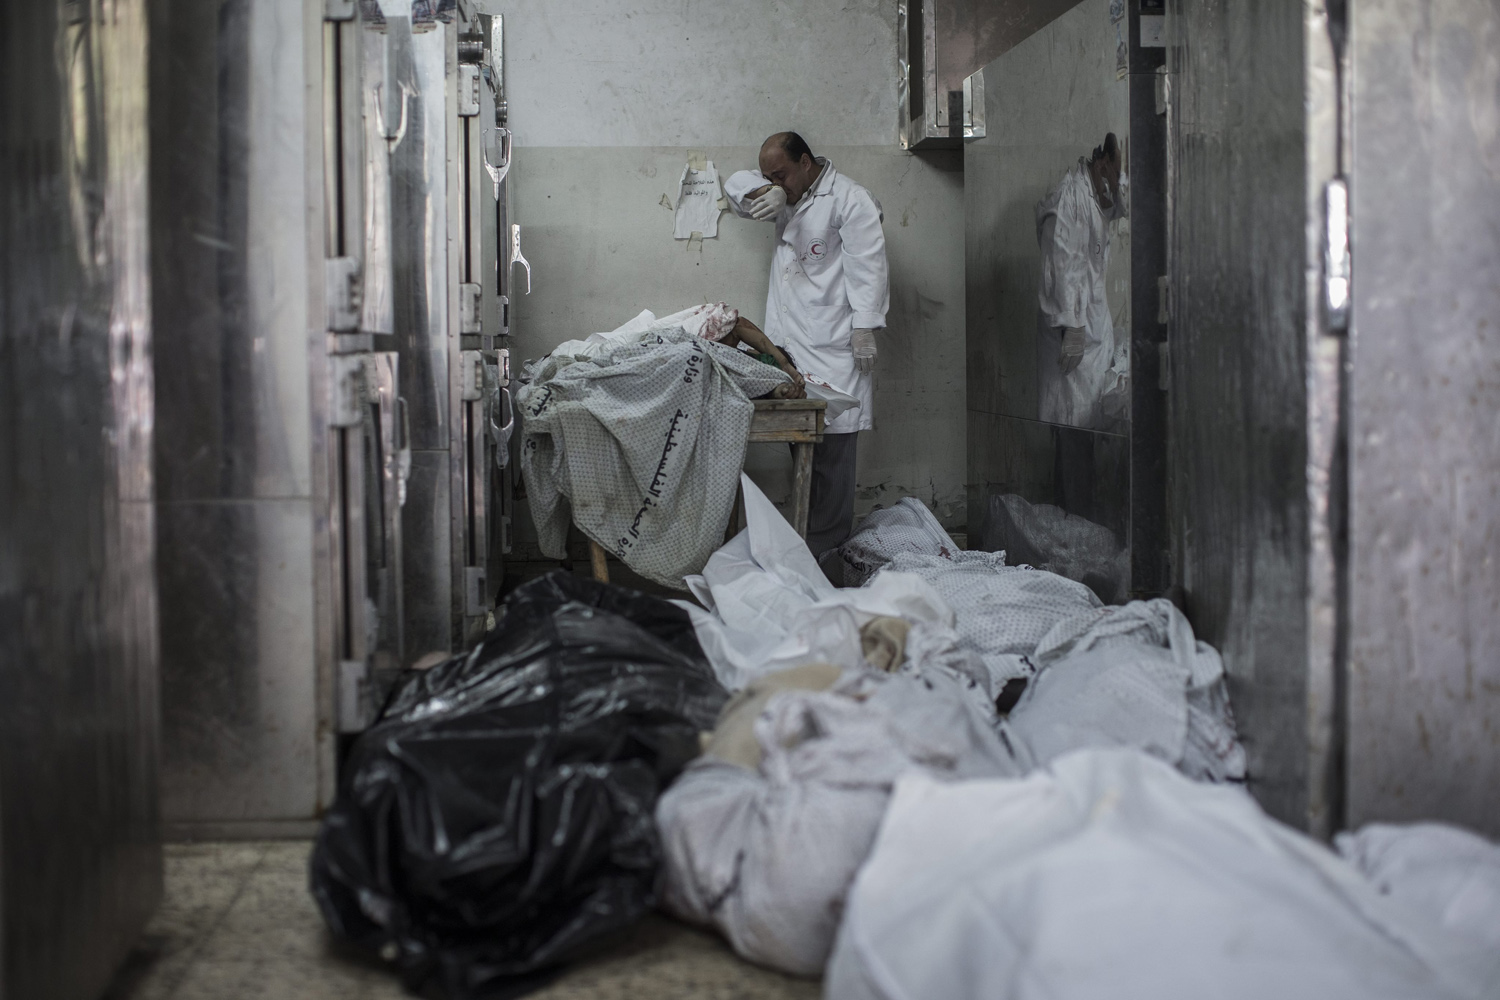 Jul. 20, 2014. A doctor cries while standing next to a table with the bodies of four dead children in the morgue of the Shifa hospital in Gaza City.